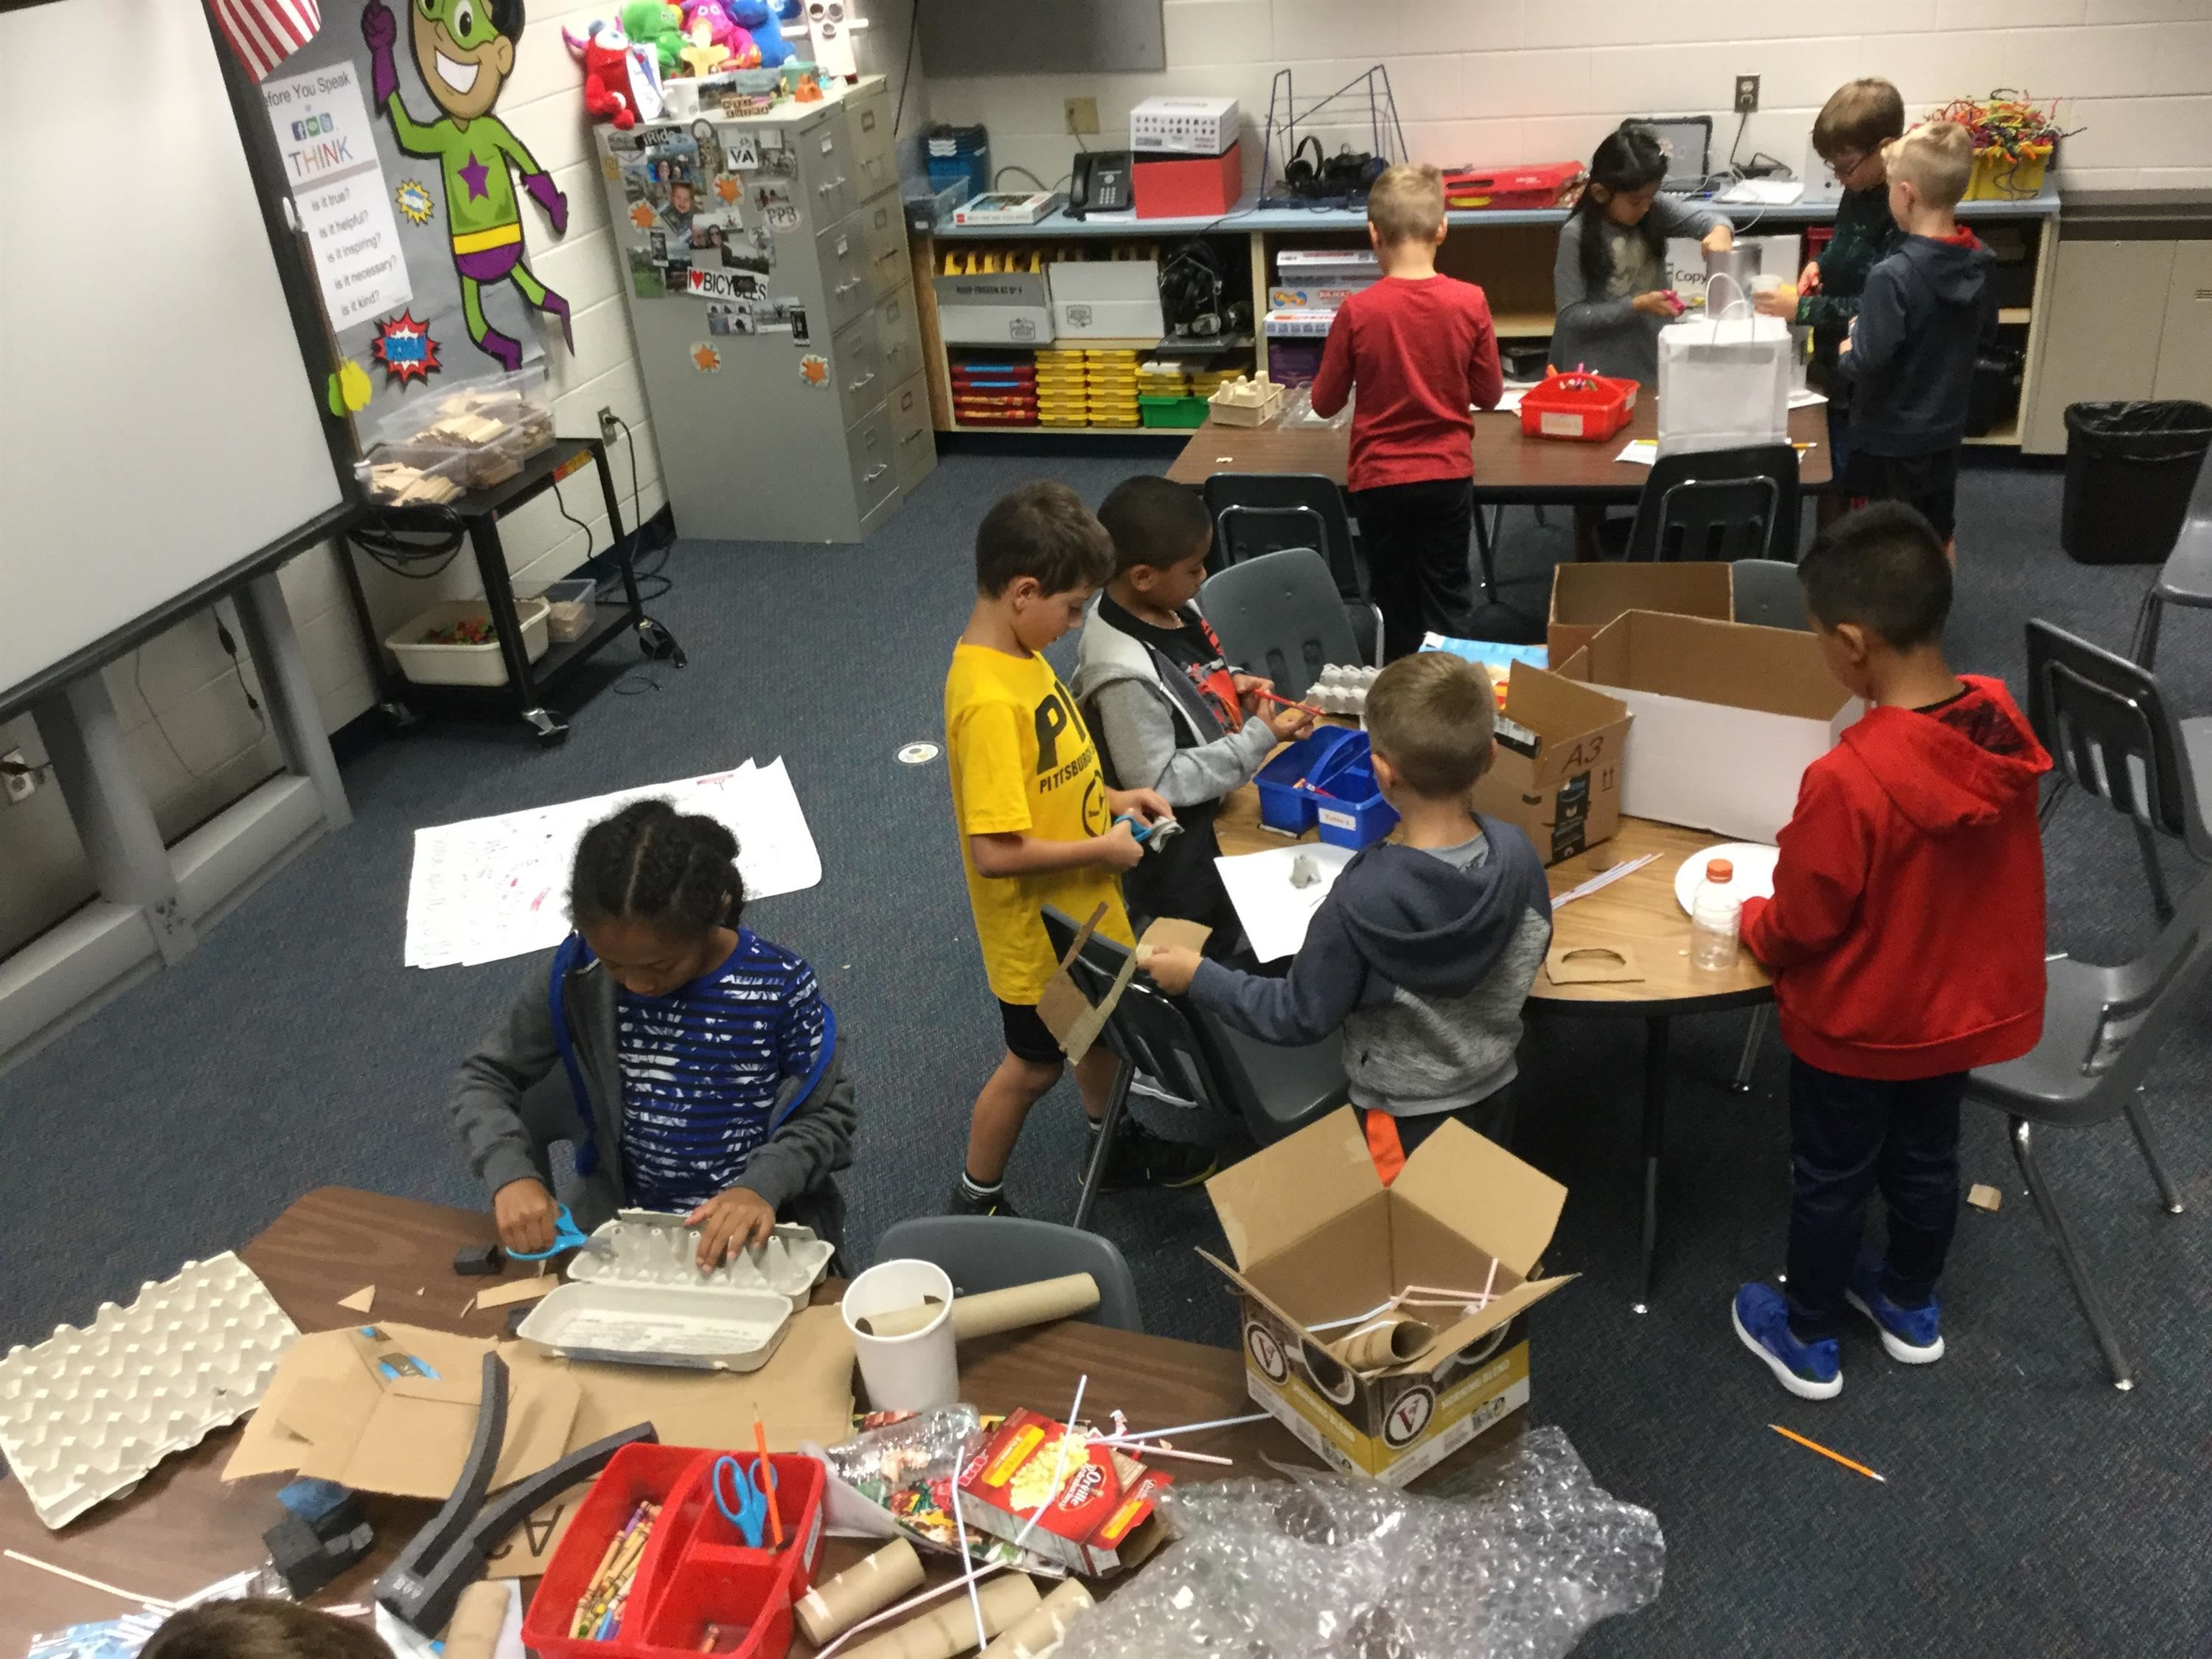 students creating cardboard arcade games